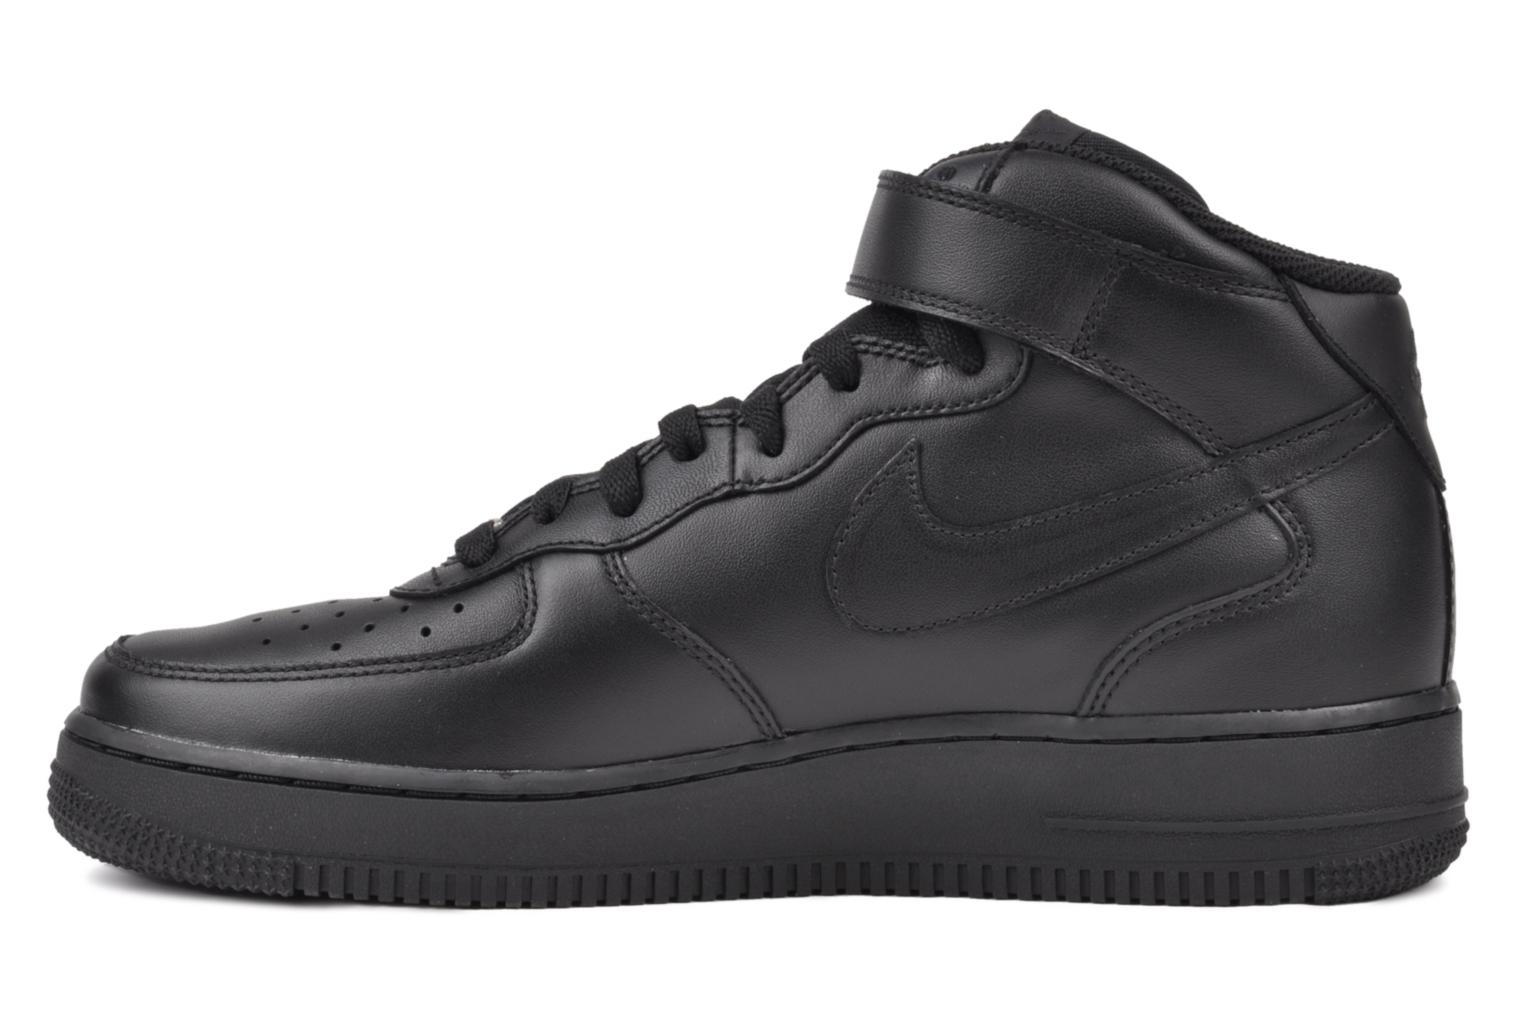 A Good Look At The Nike Air Force 1 UltraForce Low Leather Pack